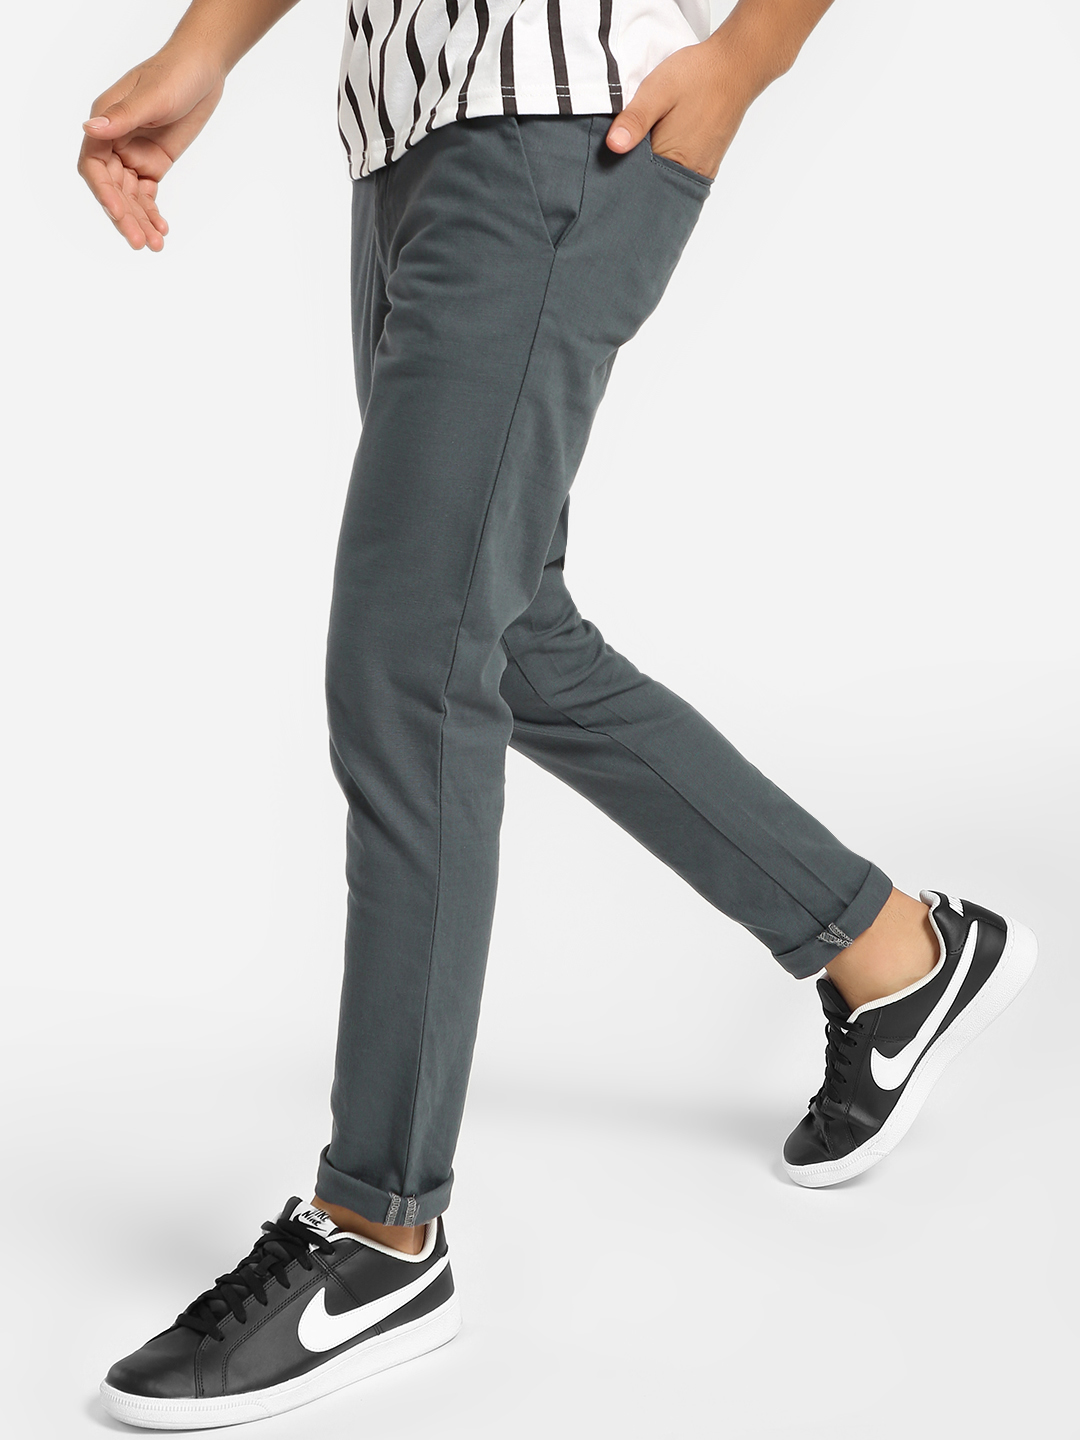 Mr Button Grey Drawcord Slim Trousers 1